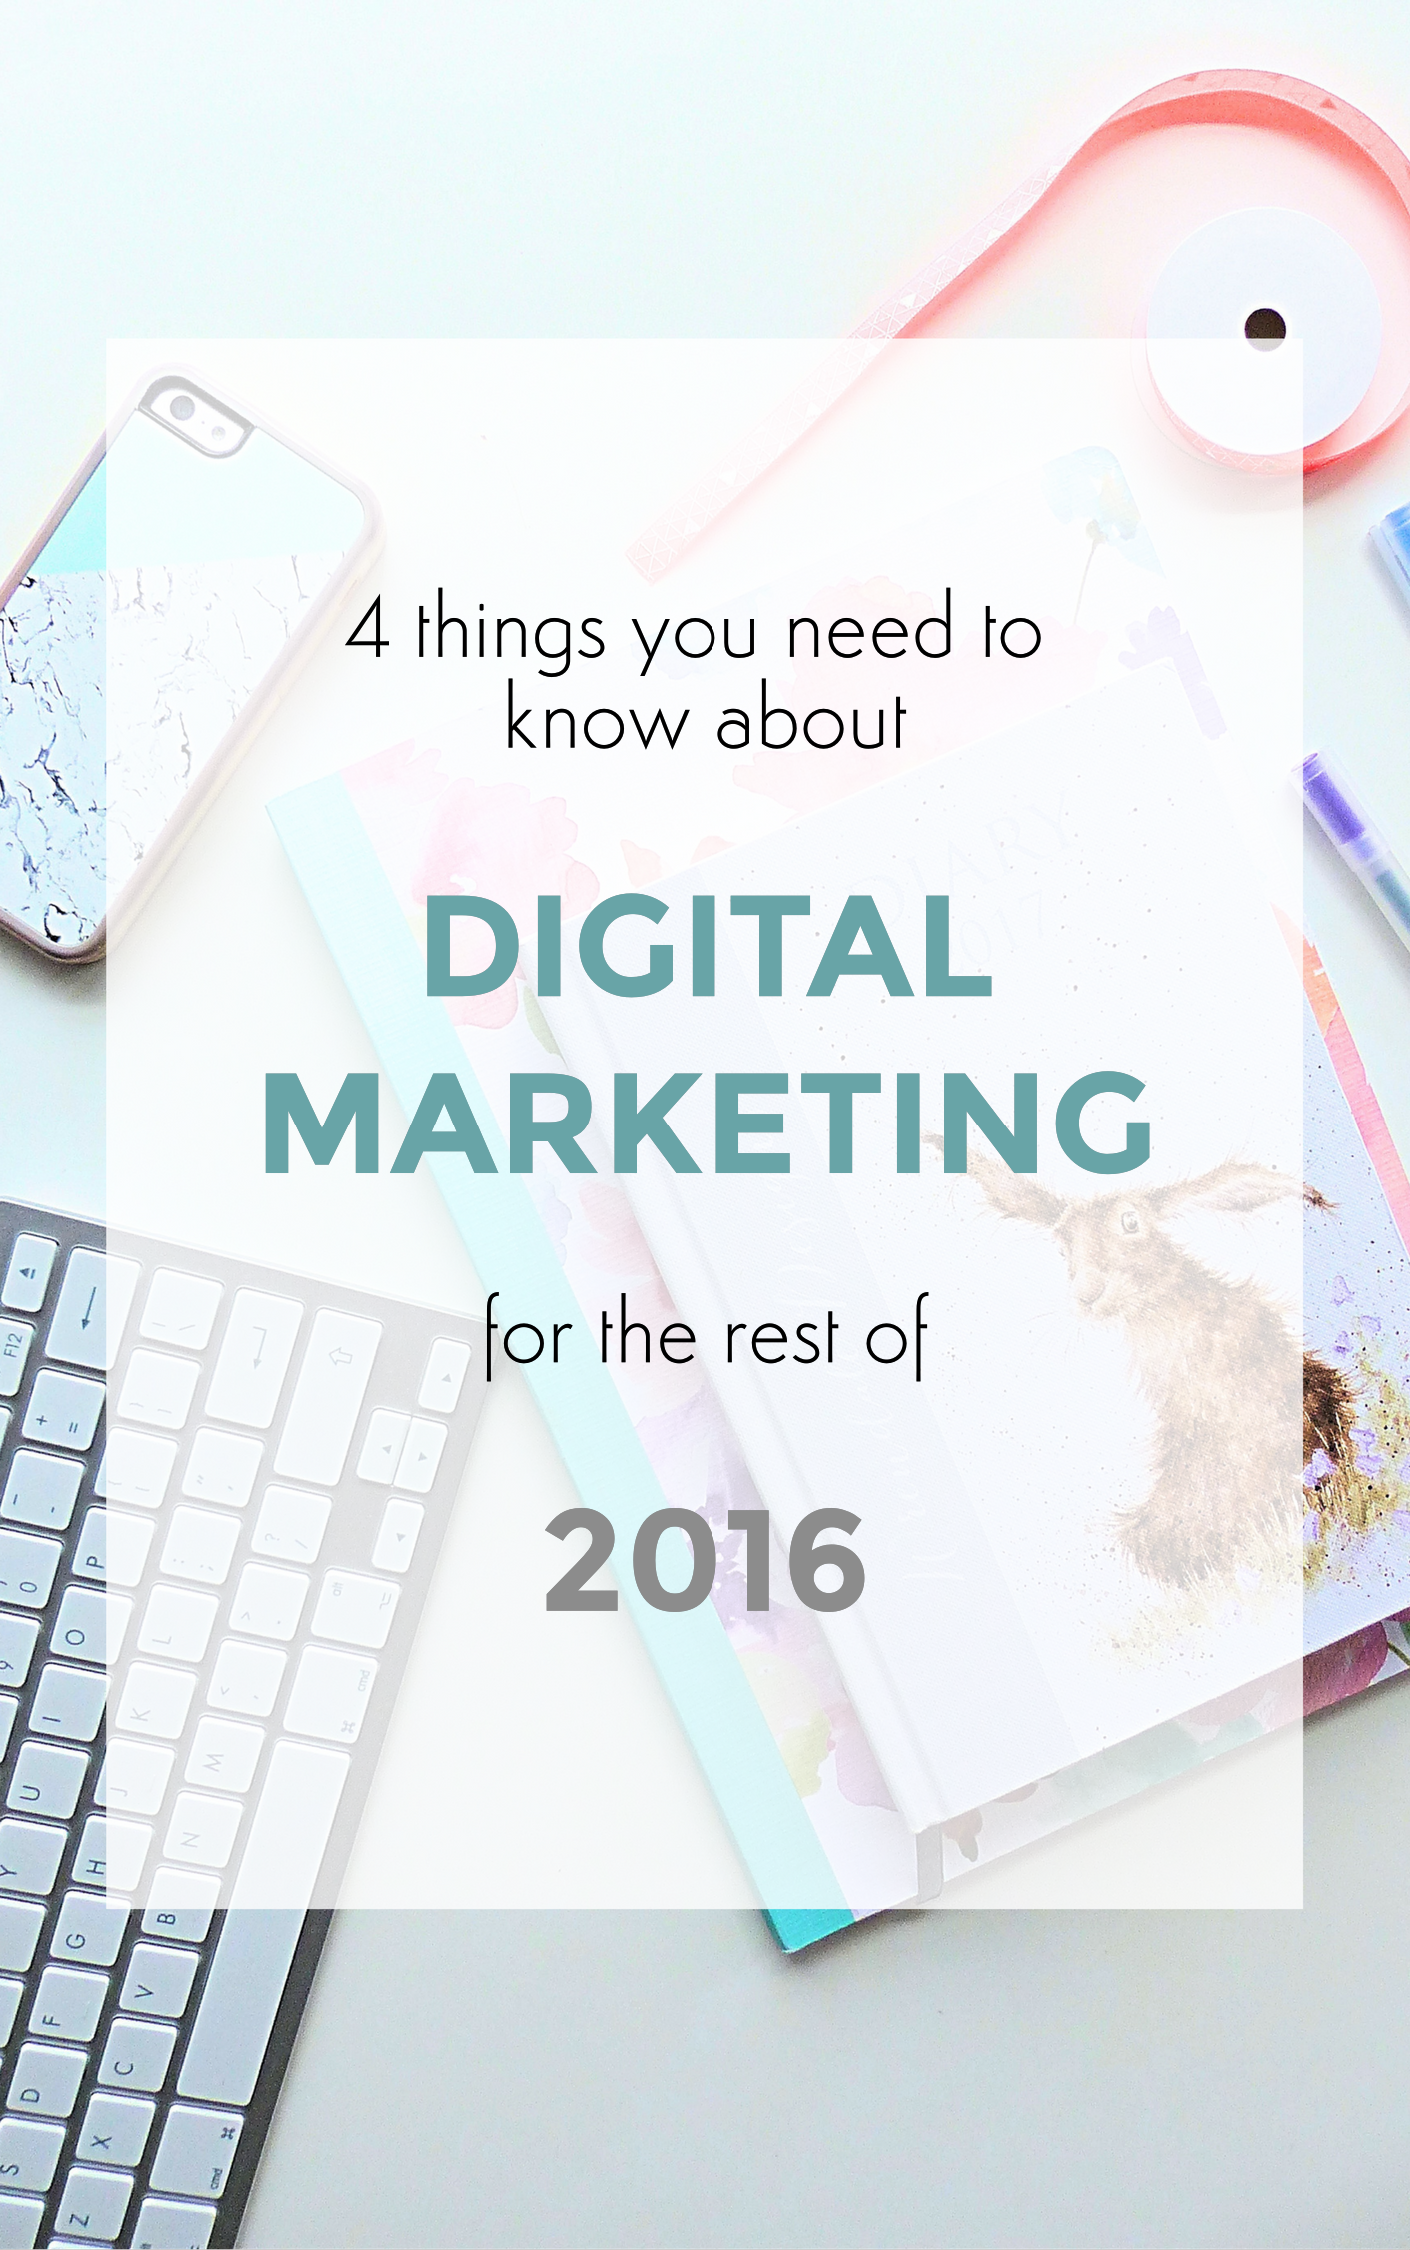 4 things you need to know about digital marketing for the rest of 2016